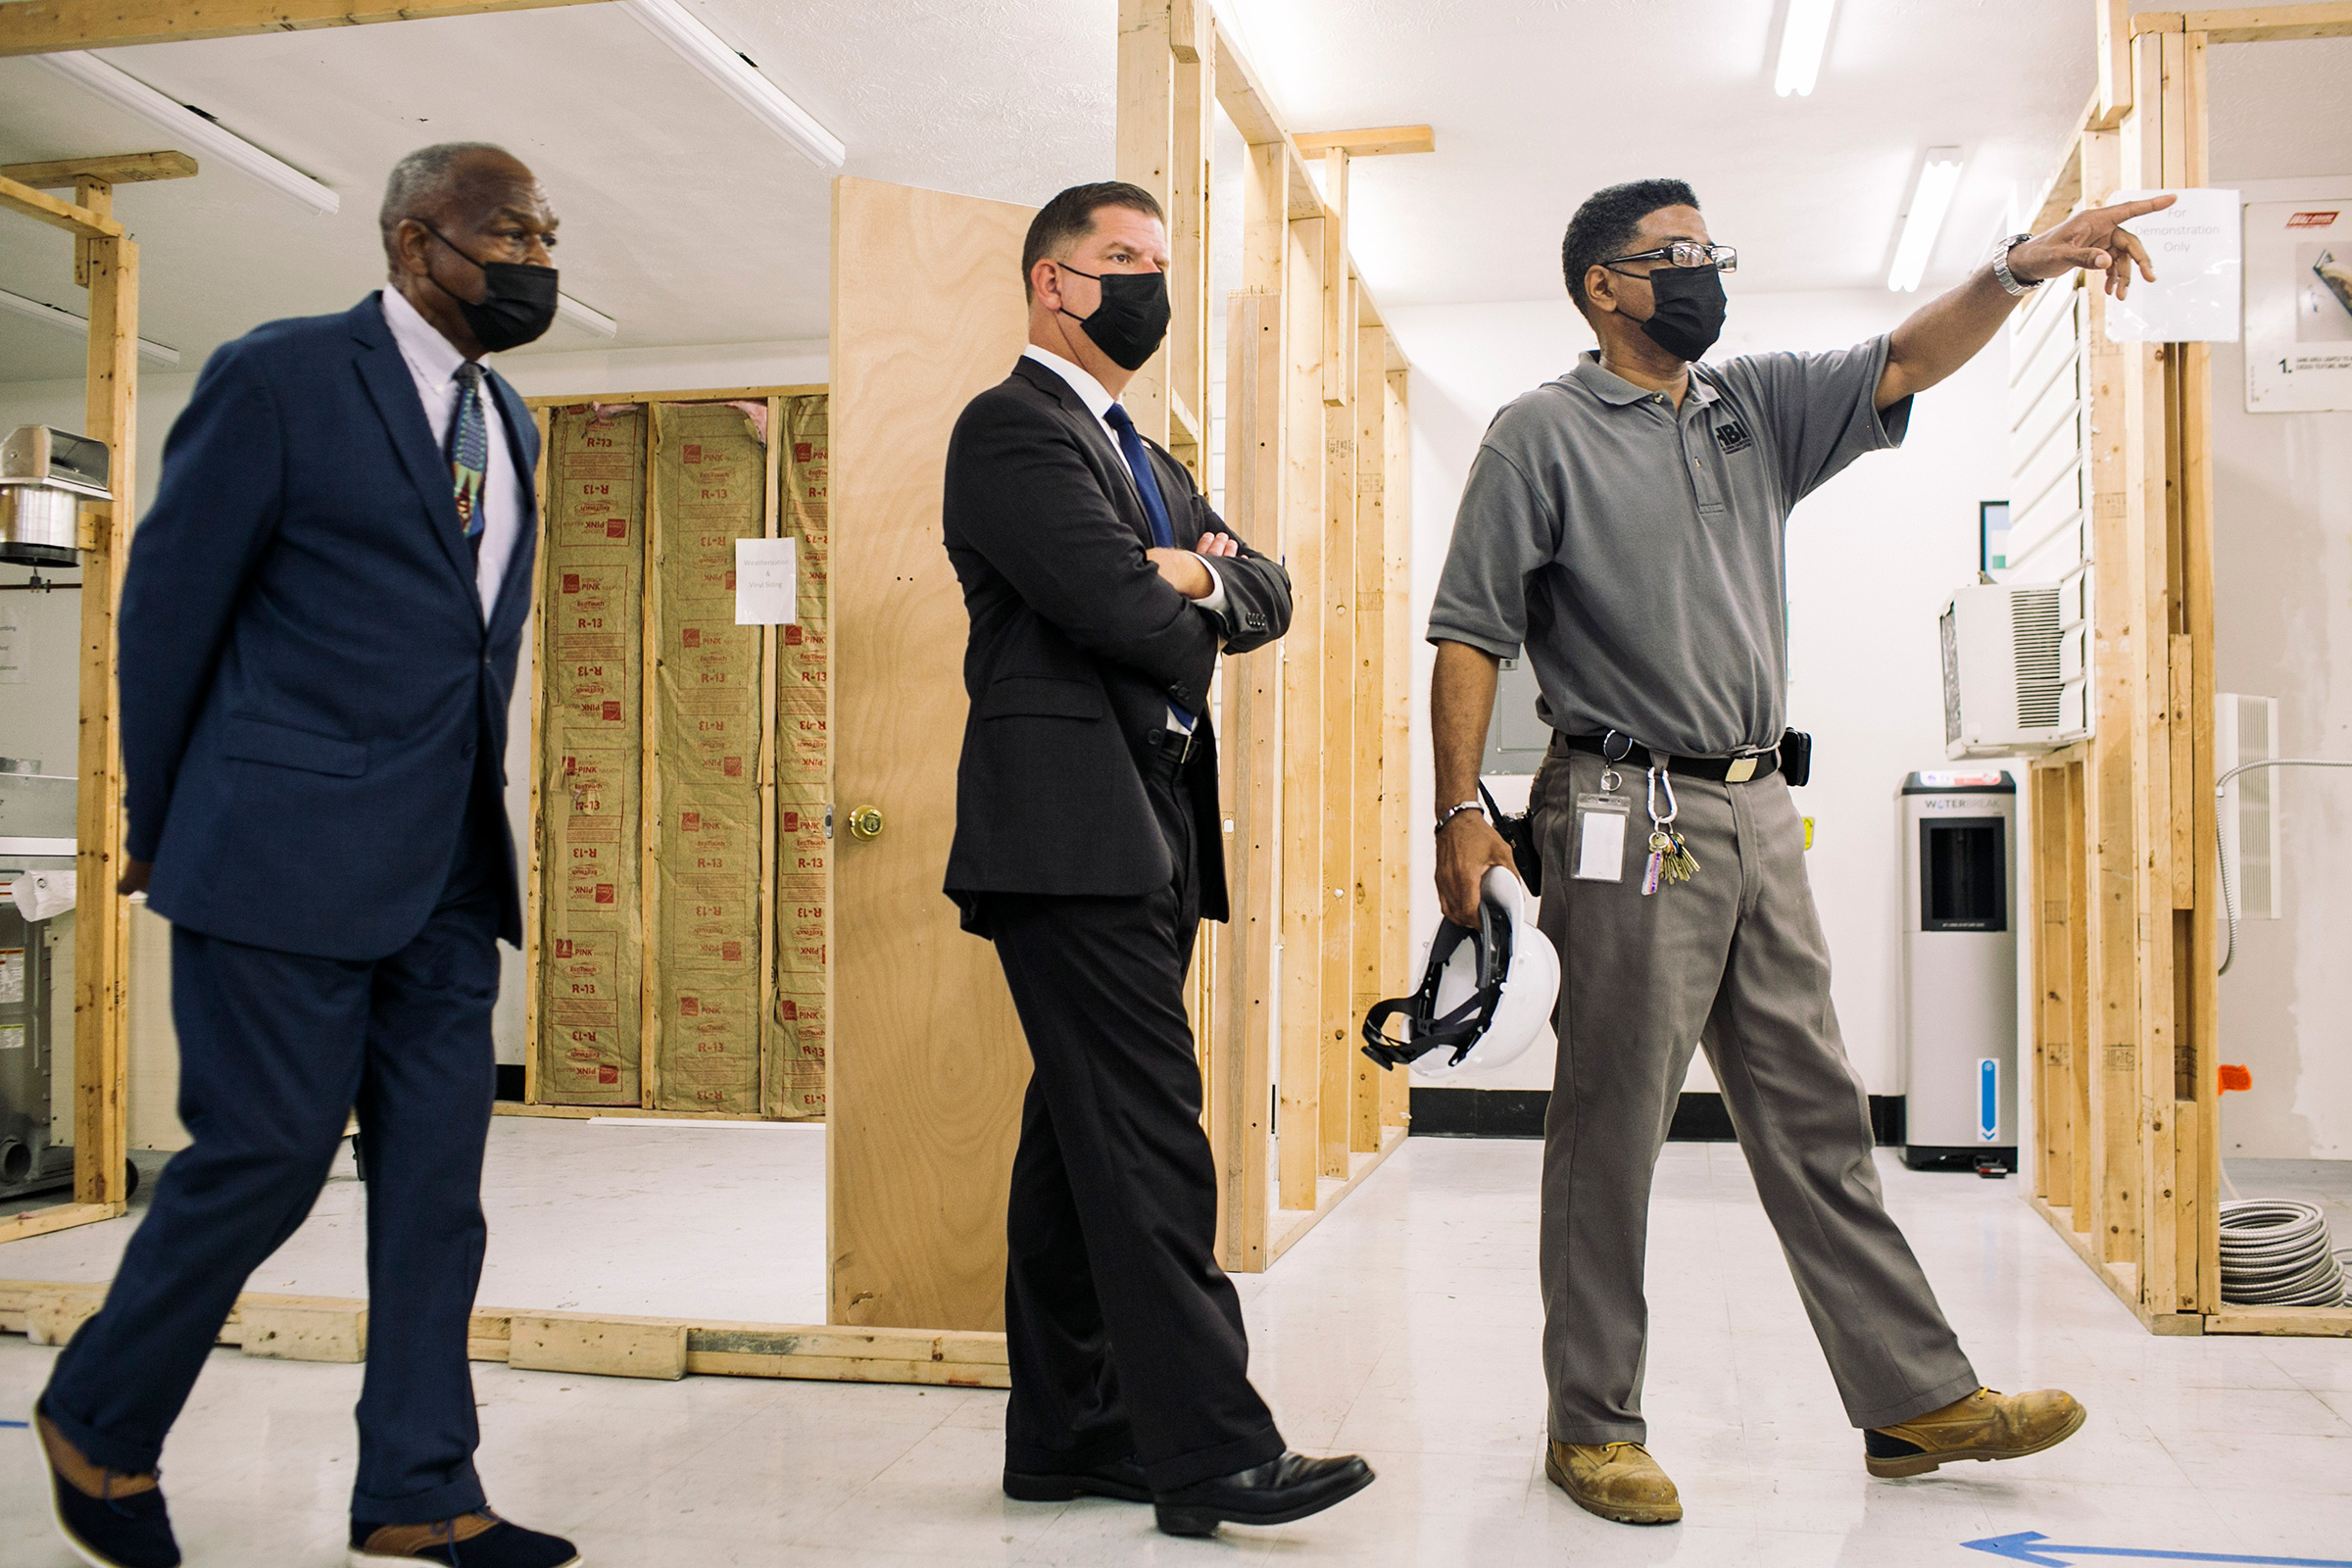 Secretary of Labor Marty Walsh tours the Dayton Jobs Corps Center in Dayton, Ohio, on Aug. 17, 2021, as part of his multi-city tour to tout Joe Biden's plans to help American workers.